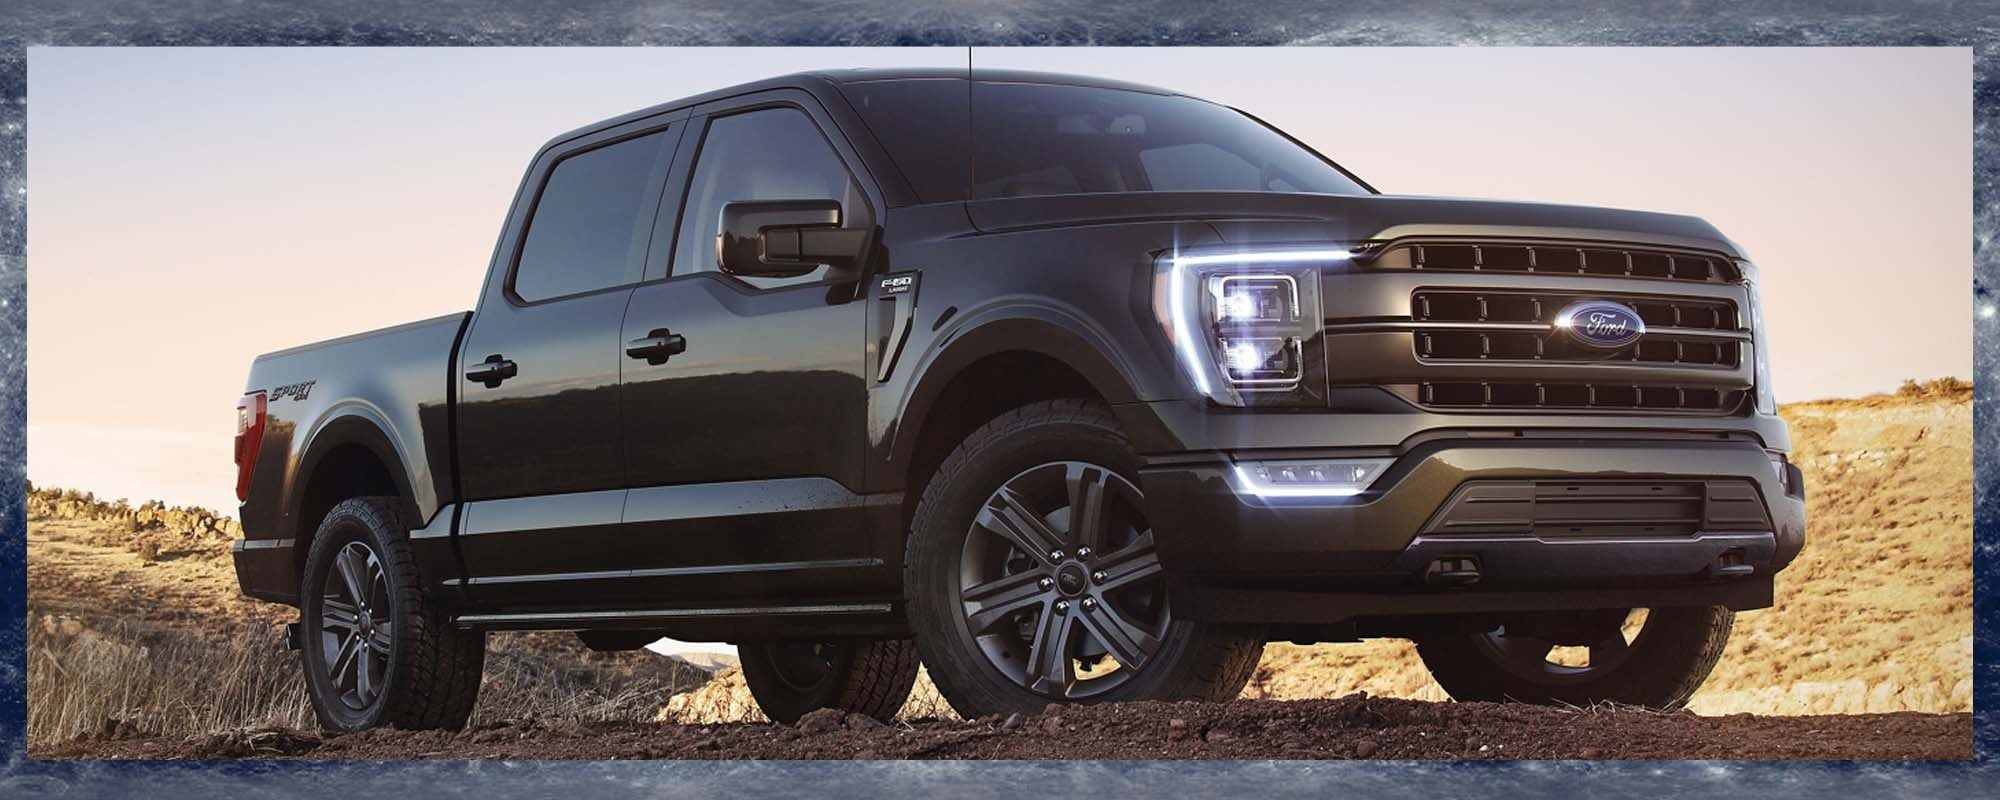 2021 Ford F-150 | Moon Township Ford, My Local Ford Dealership